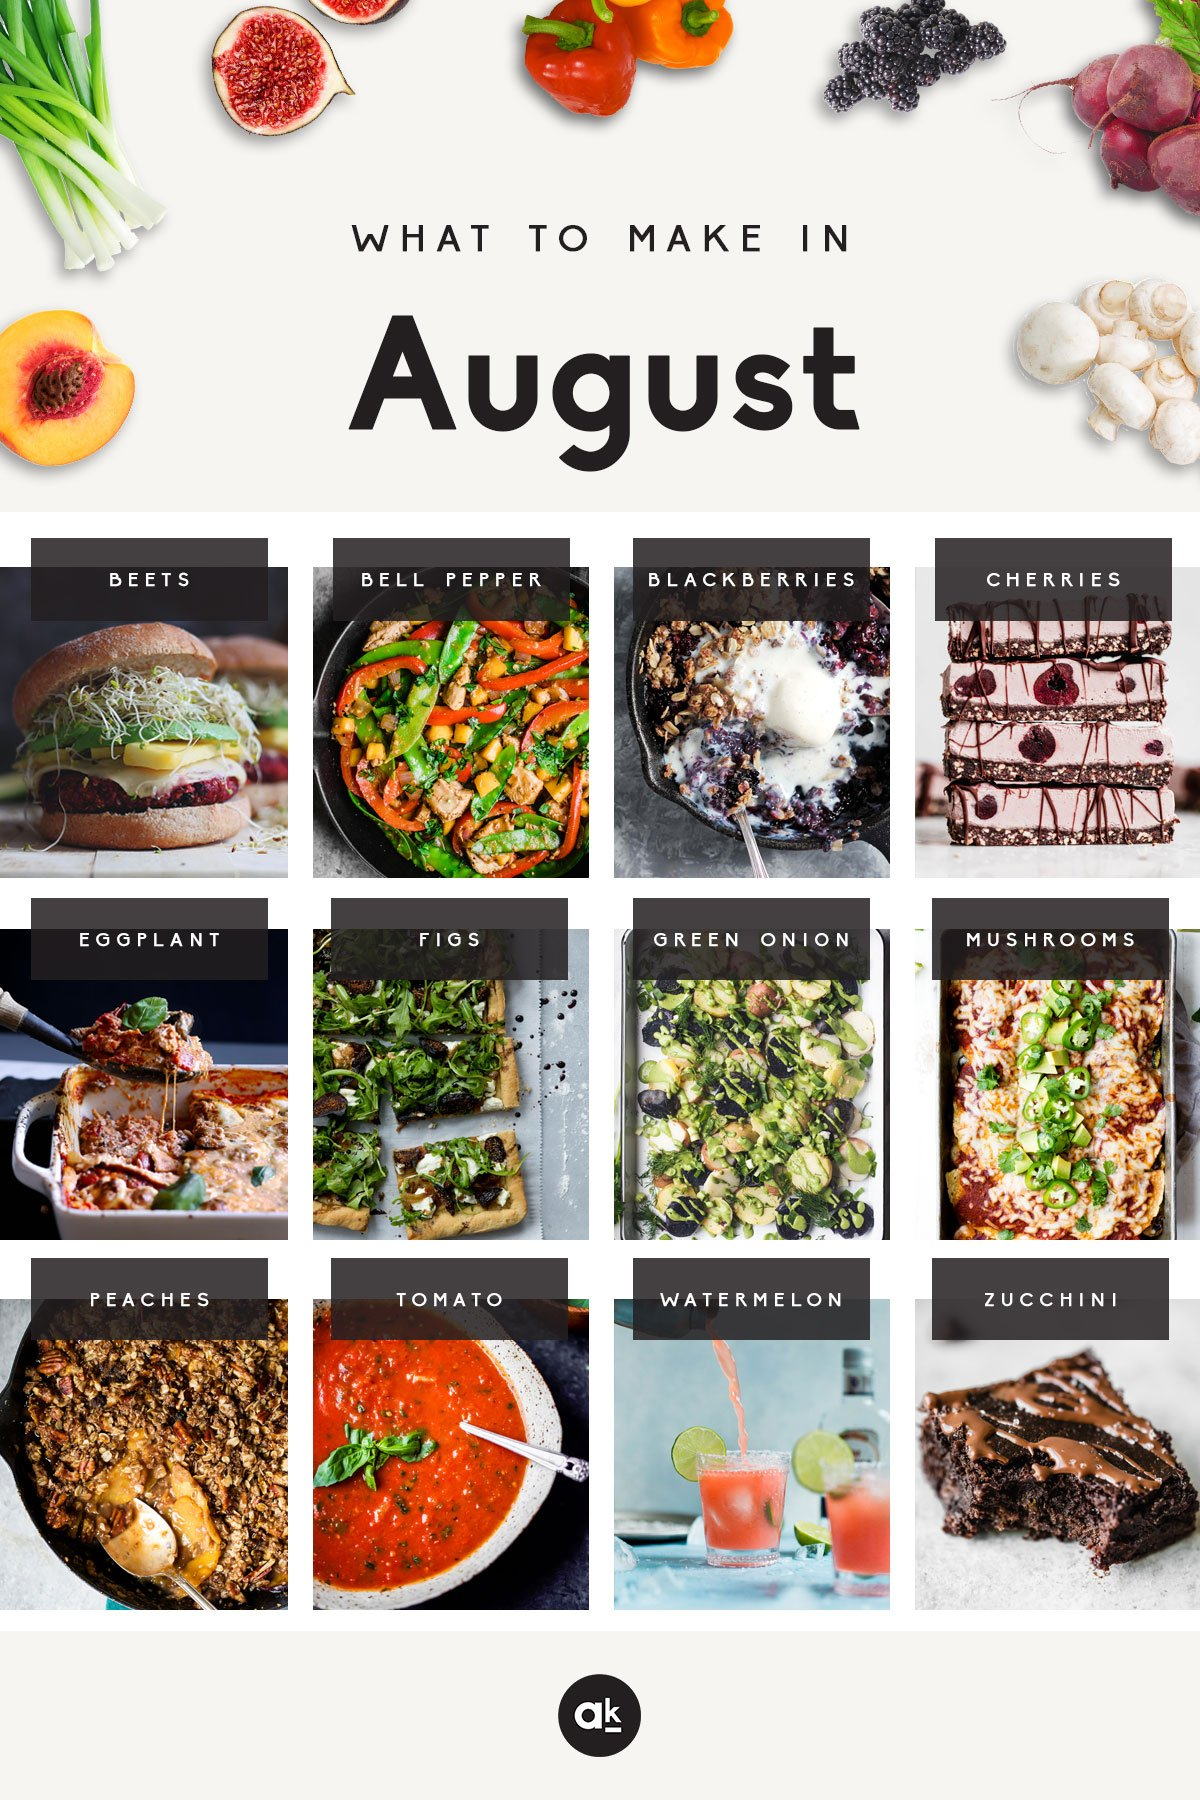 31 delicious, seasonal recipes to make in August! Pick a new recipe for every day this month, and enjoy incredible seasonal produce.